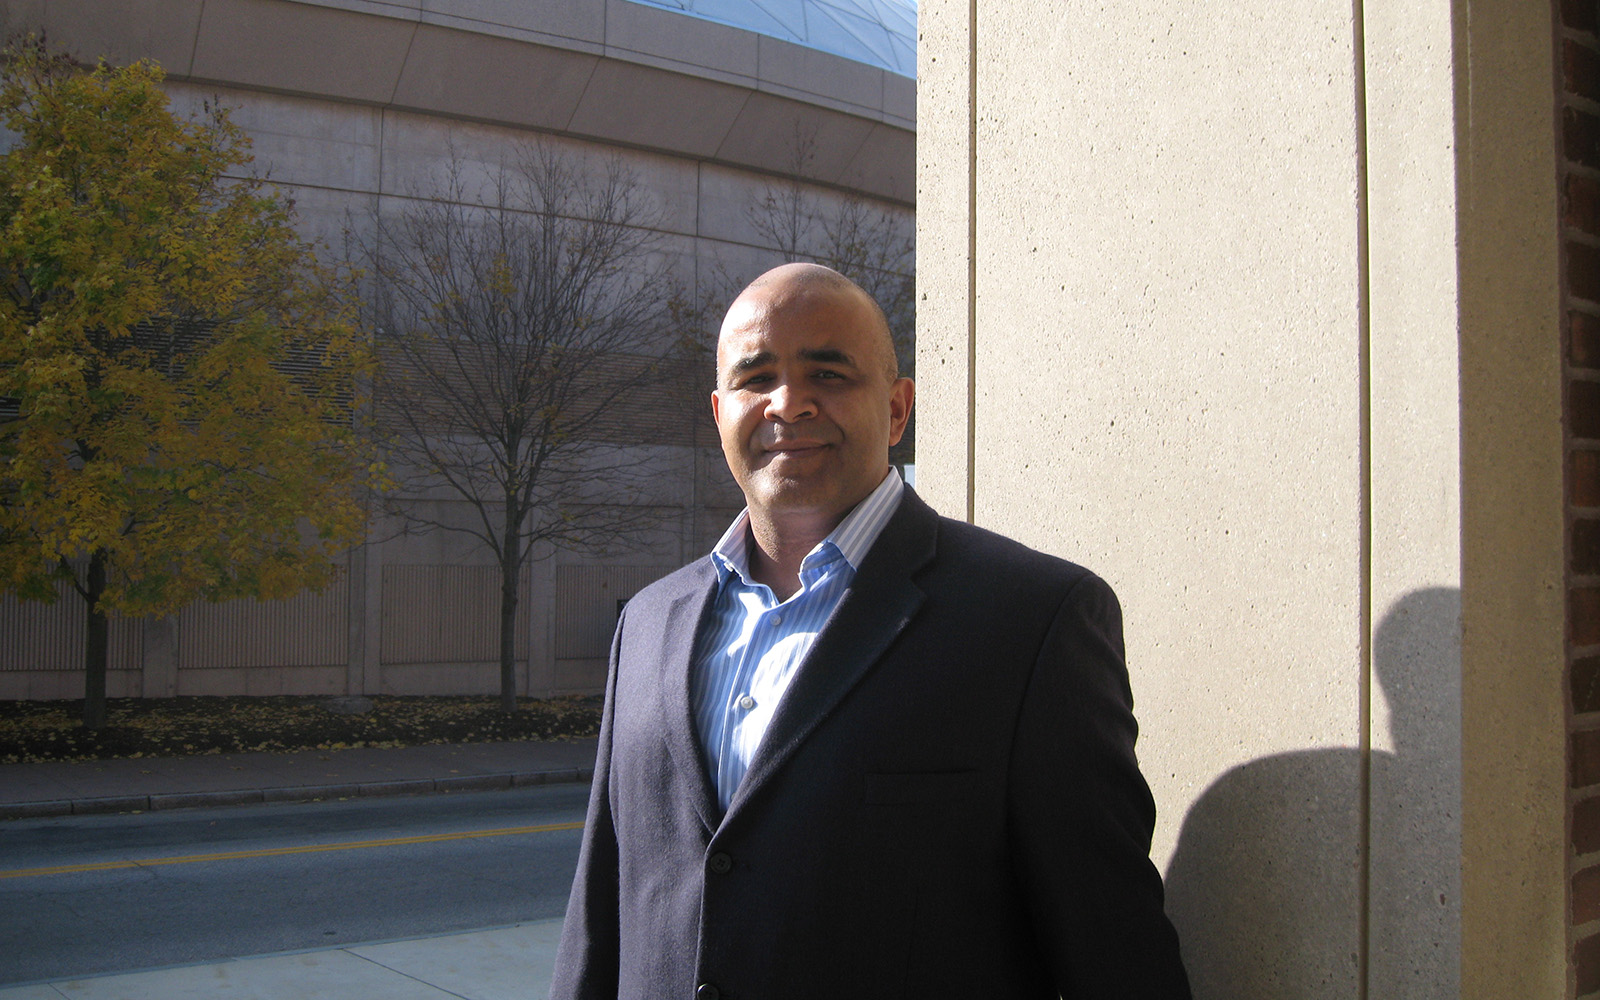 Jose Cruz of the UConn School of Business will be presented with the Service Excellence Award from the American Association of University Professors in April. (Nathan Oldham / UConn School of Business)